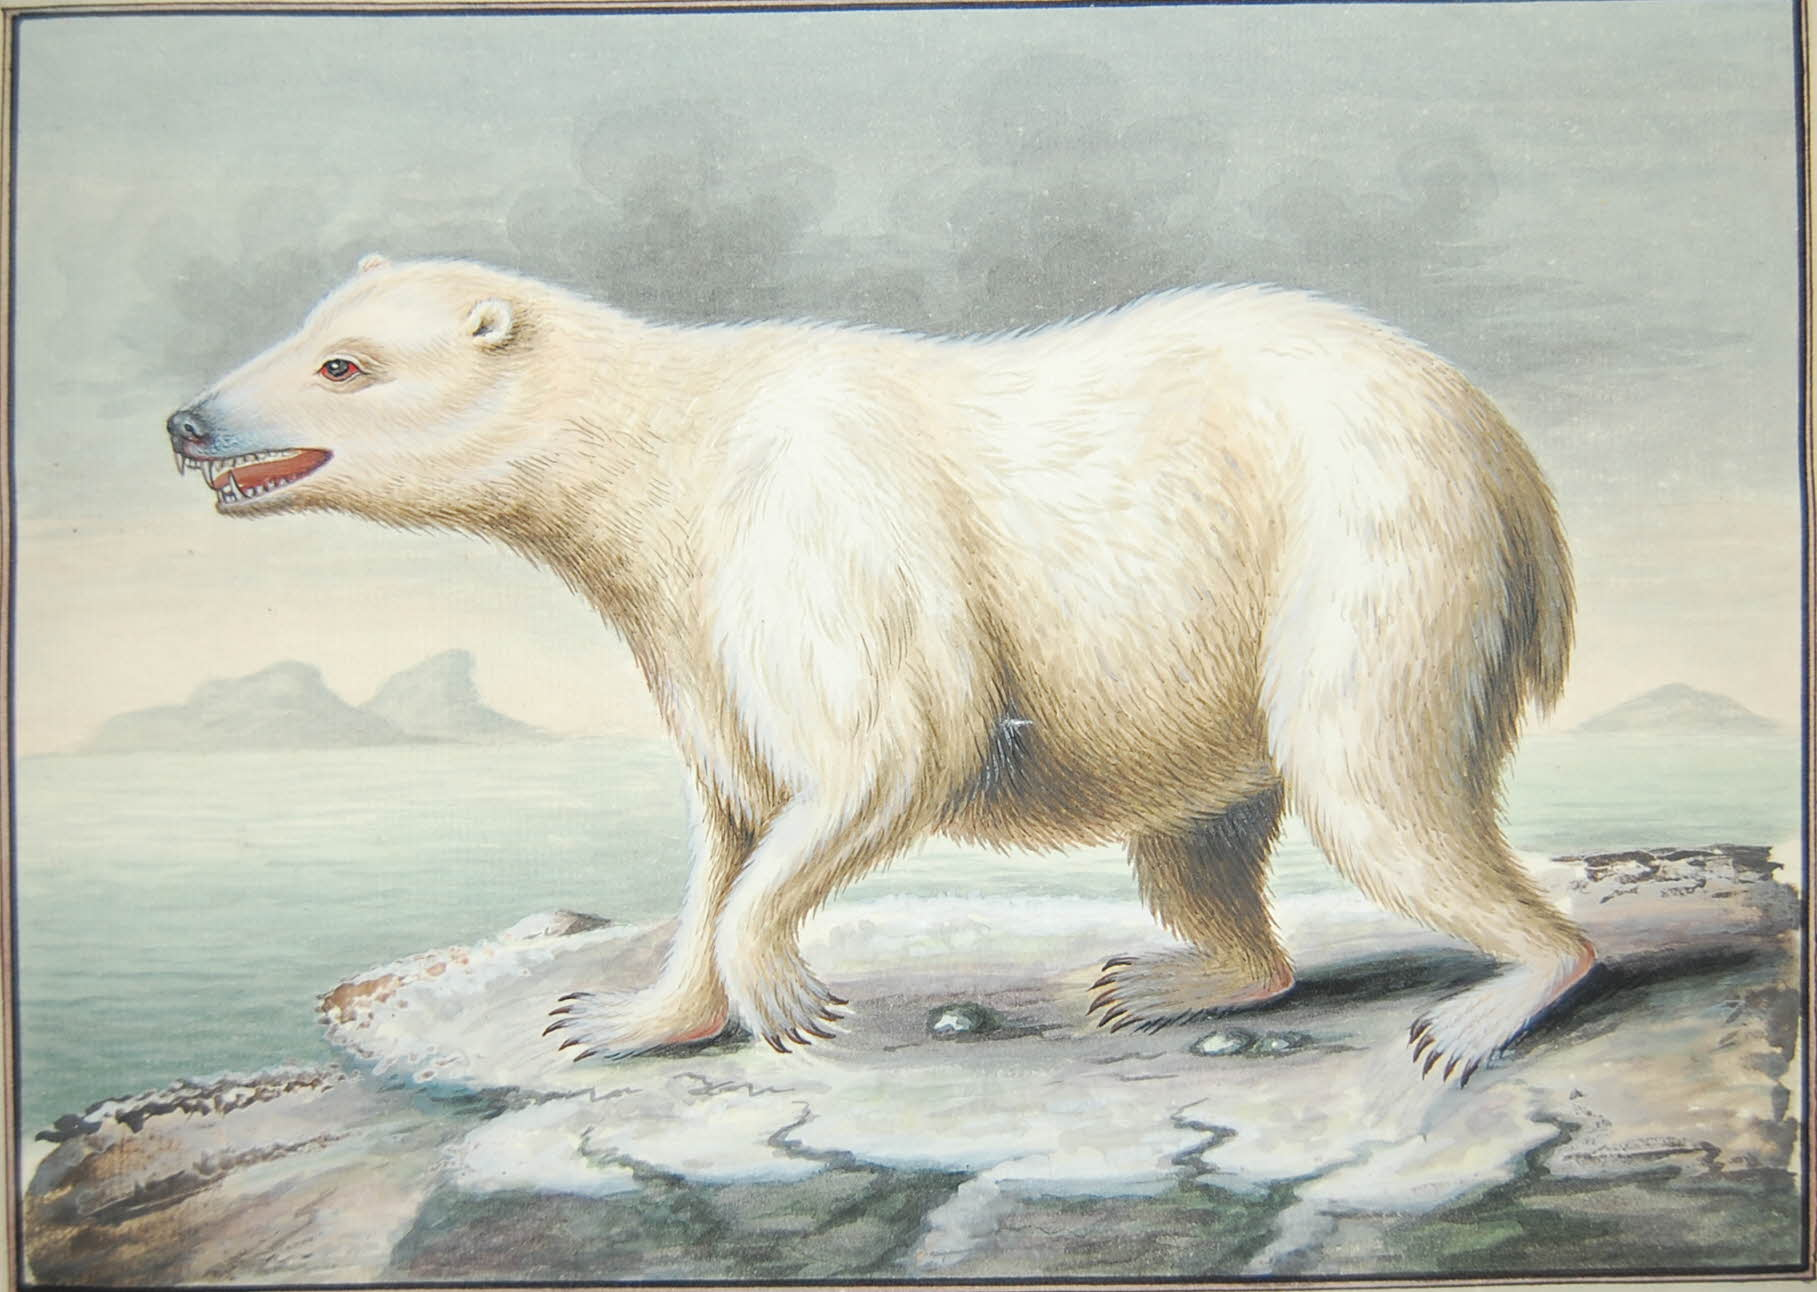 Watercolour painting of a polar bear in profile facing left, with sea and land (icebergs?) behind.